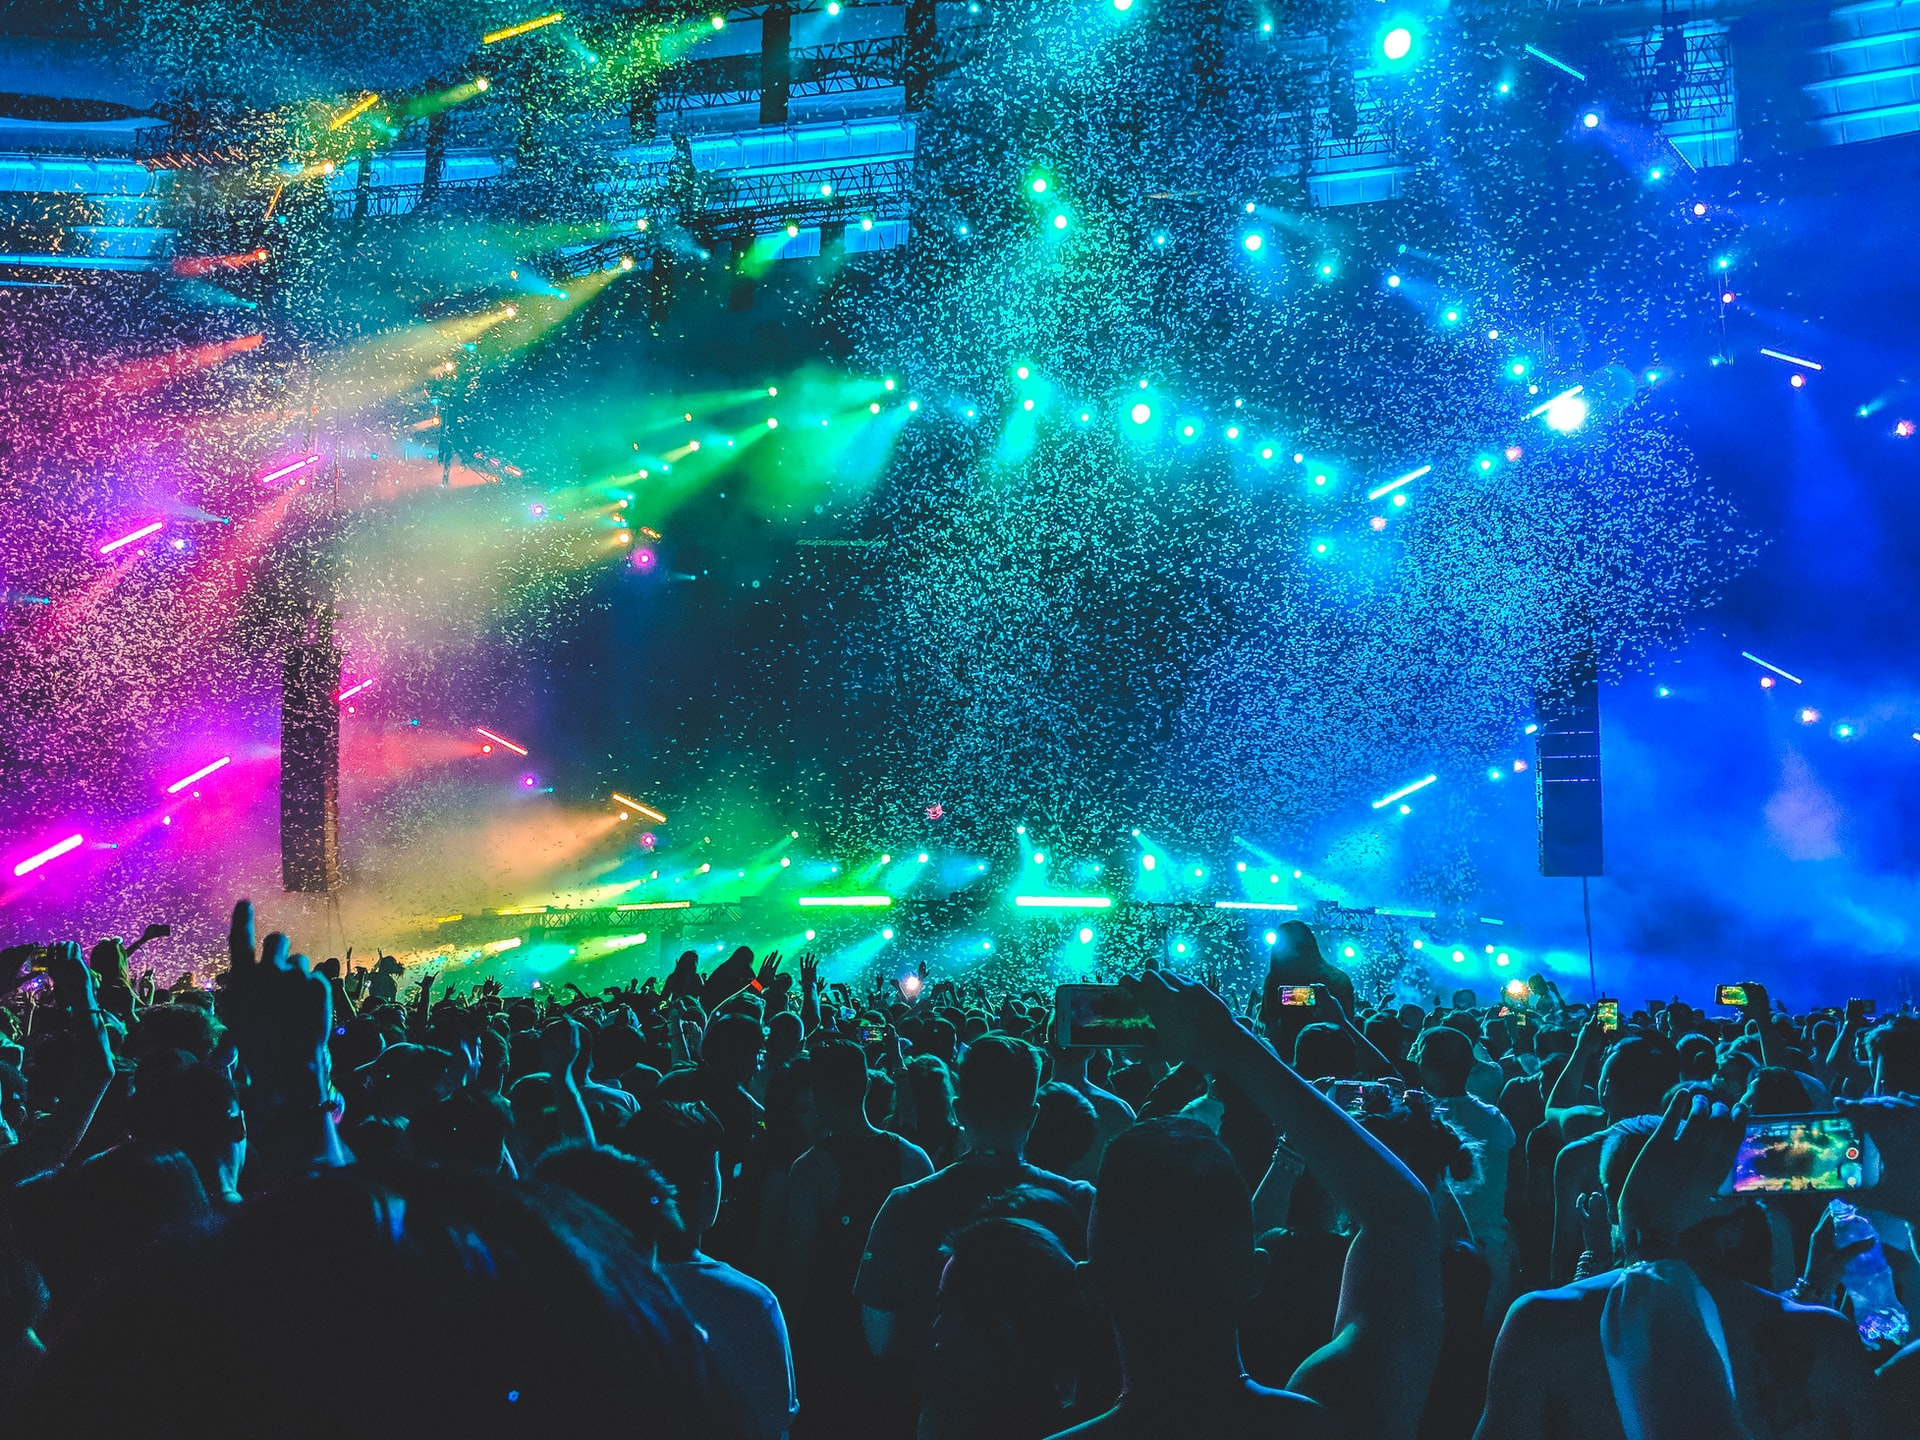 Immersive Music Experience Startup Stage11 Raises $5.7 Million in Seed Funding